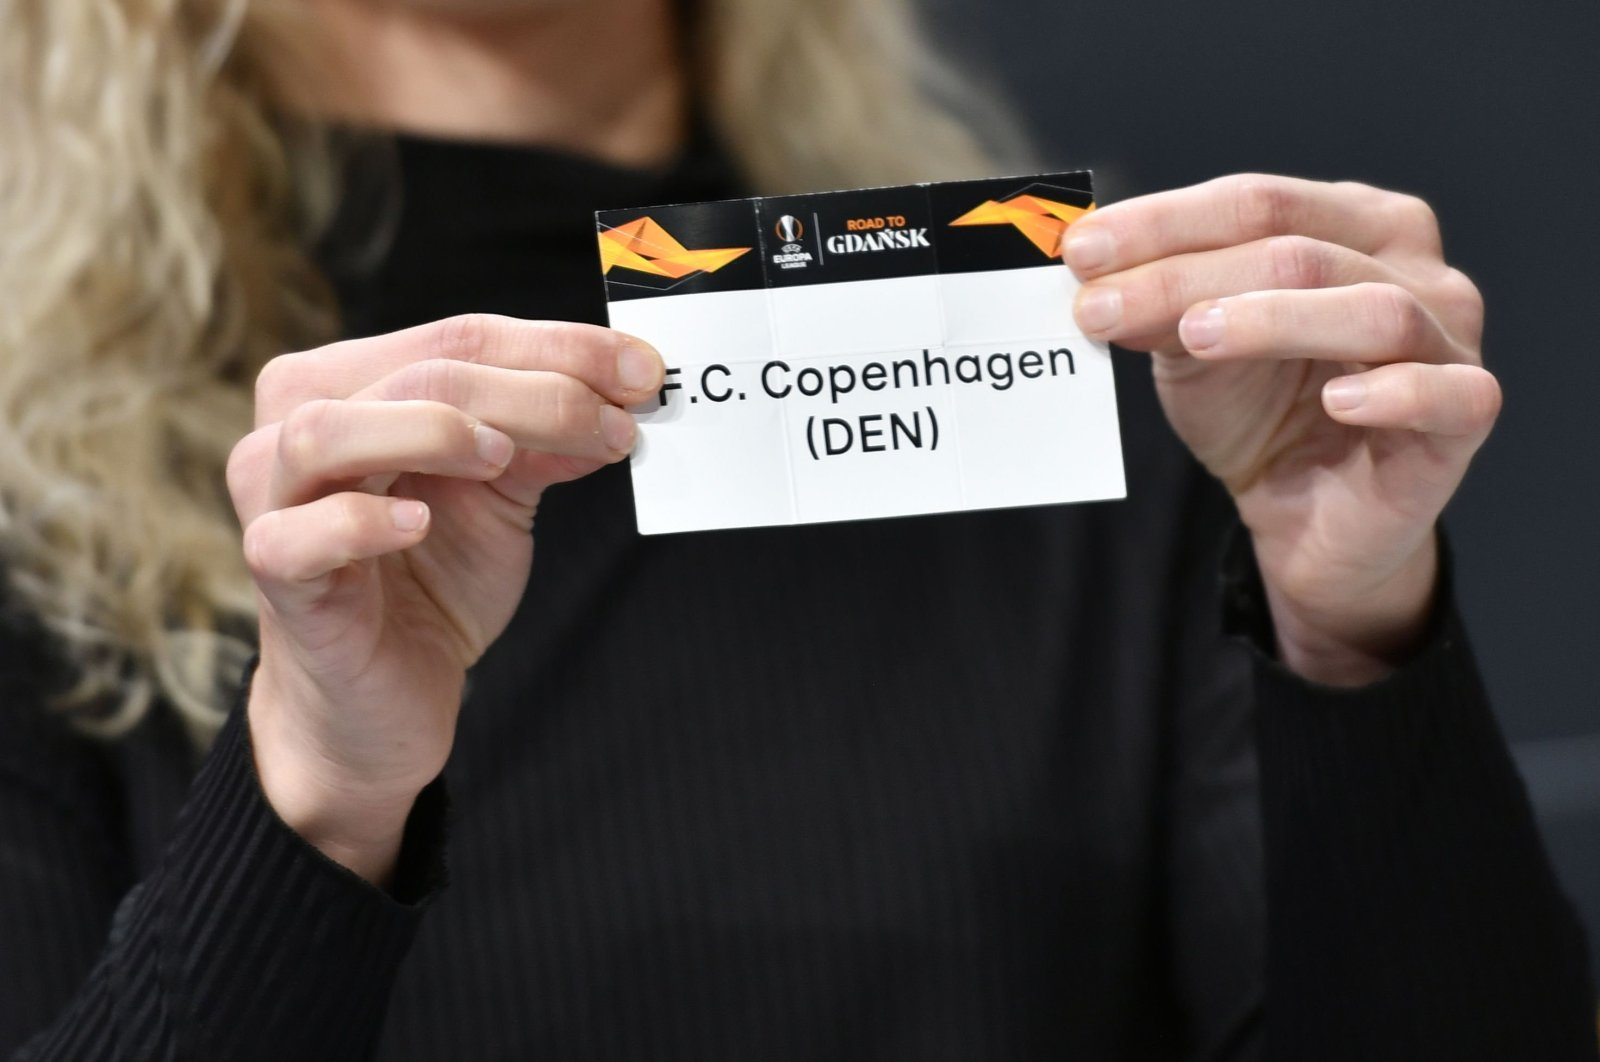 UEFA Europa League ambassador Josephine Henning holds the slip of FC Copenhagen during the UEFA Europa League football cup round of 32 draw ceremony in Nyon, Dec.16, 2019. (AFP Photo)